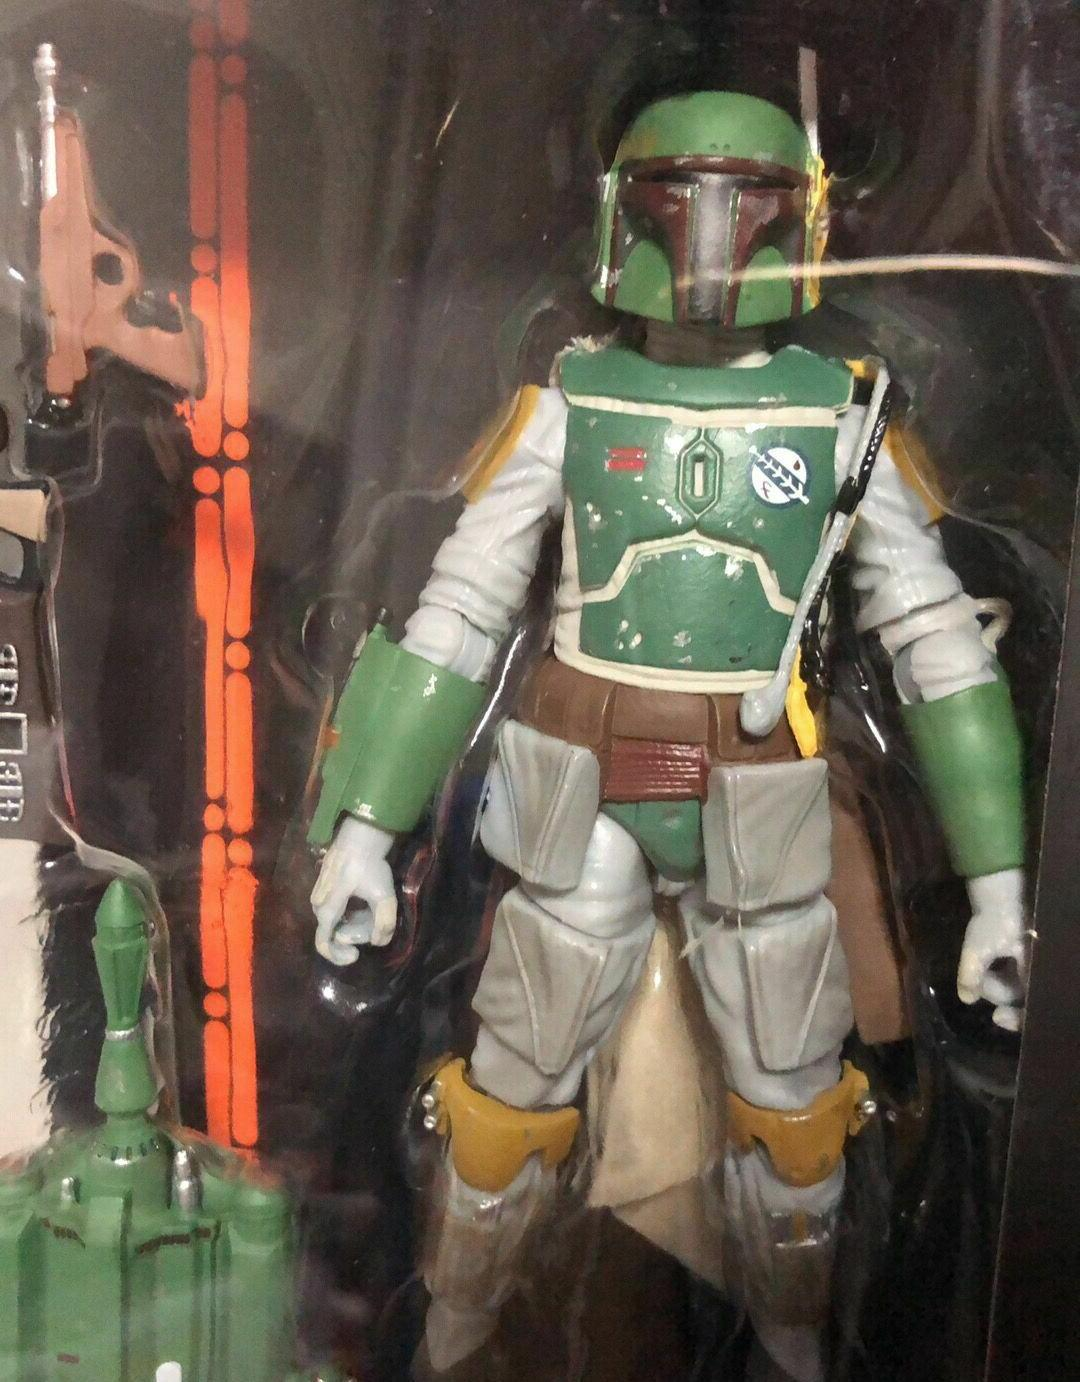 6 Inch STAR The Series: The Force Awakens Boba Fett Action